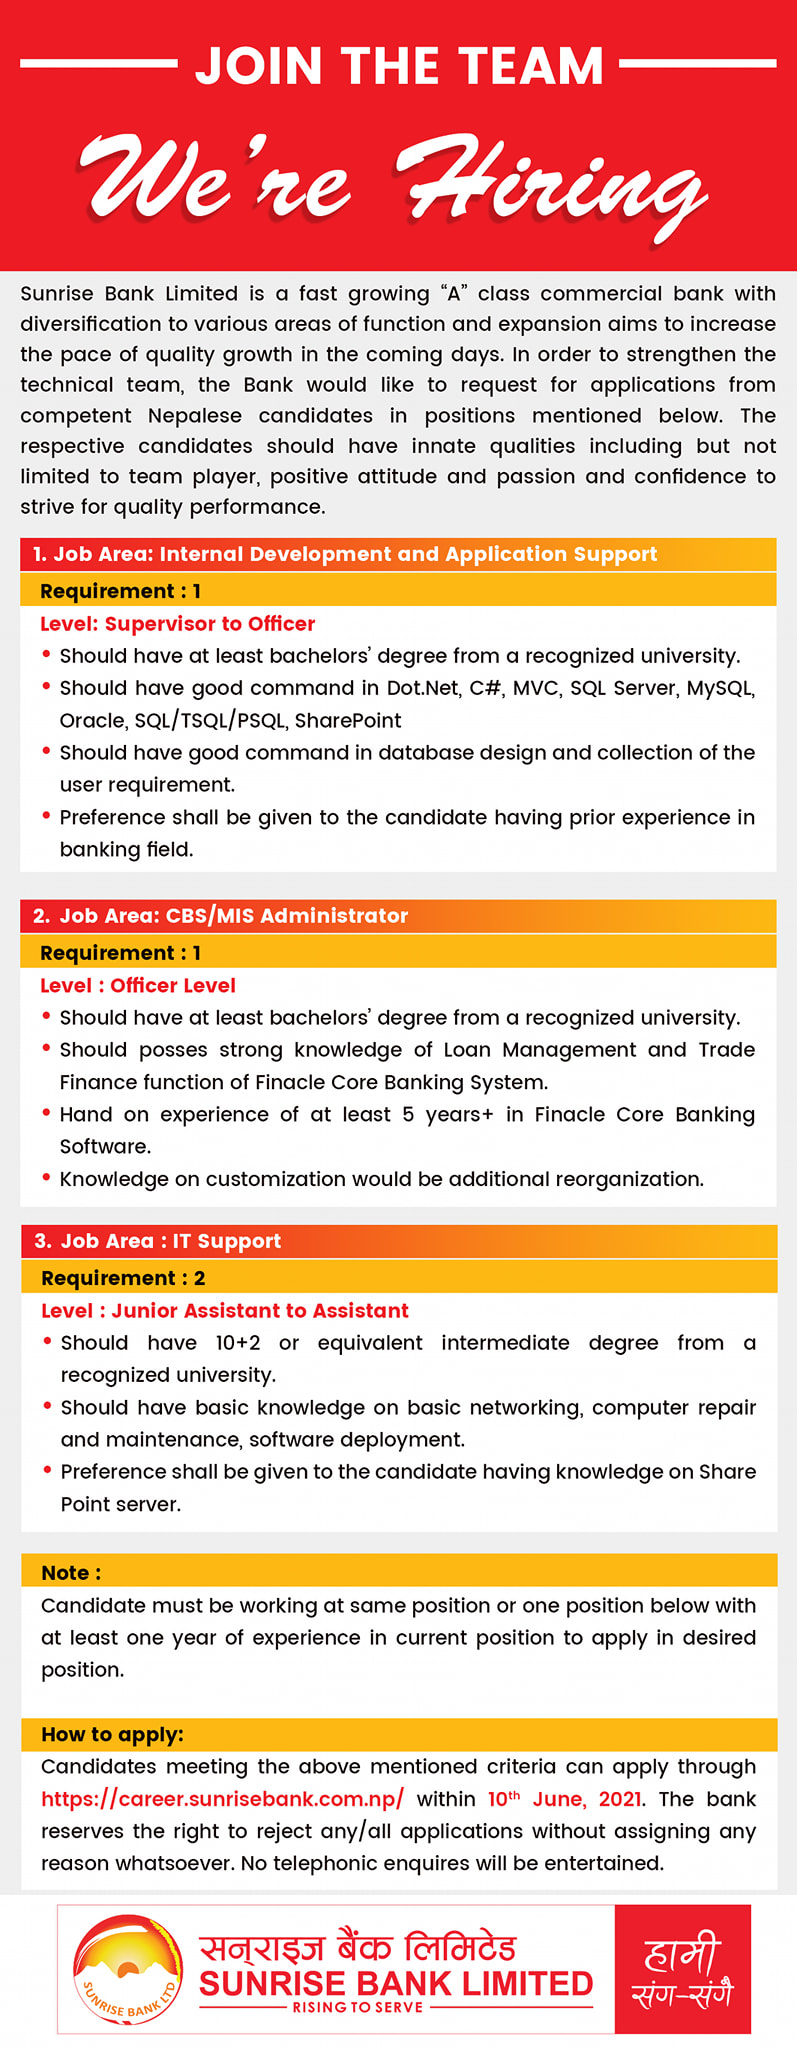 Sunrise Bank Limited Vacancy for Supervisor, Officer and Junior Assistant Level